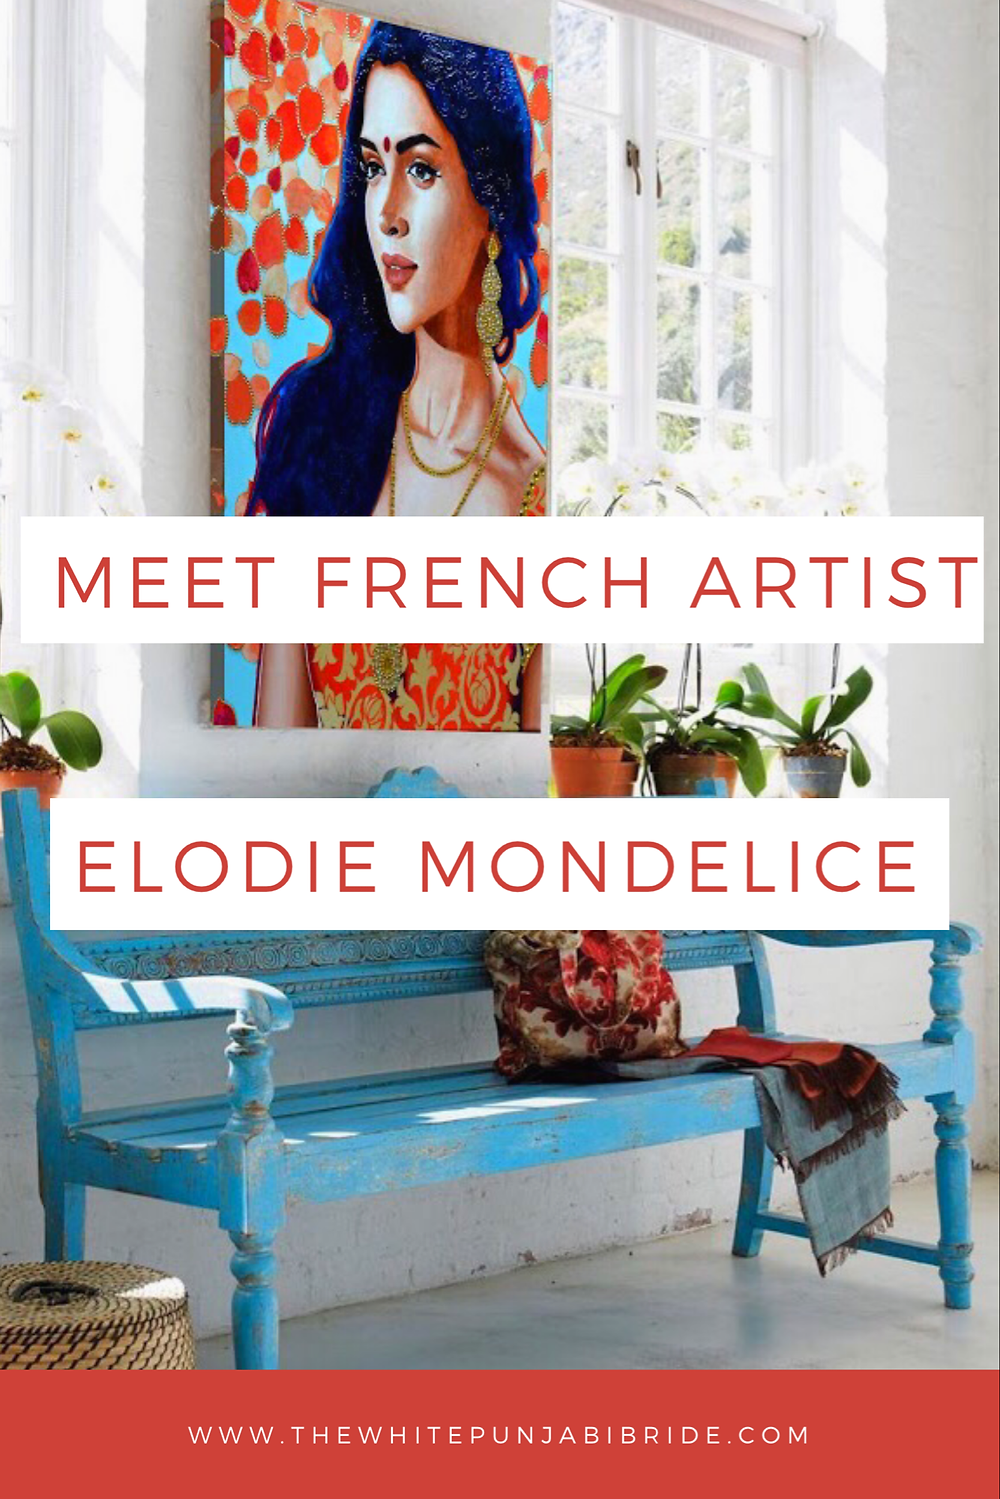 Meet French Artist Elodie Mondelice